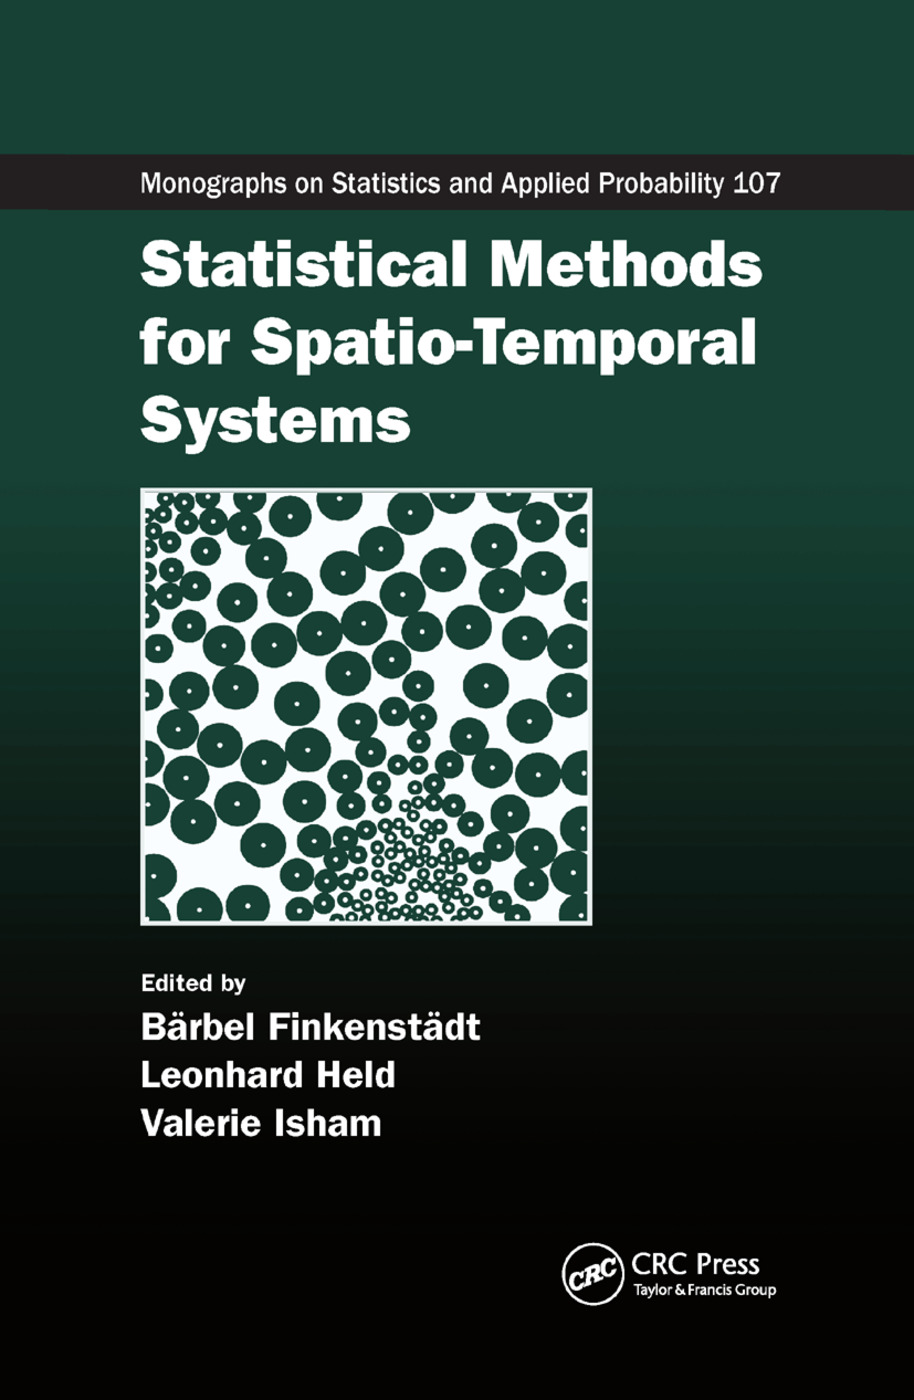 Statistical Methods for Spatio-Temporal Systems